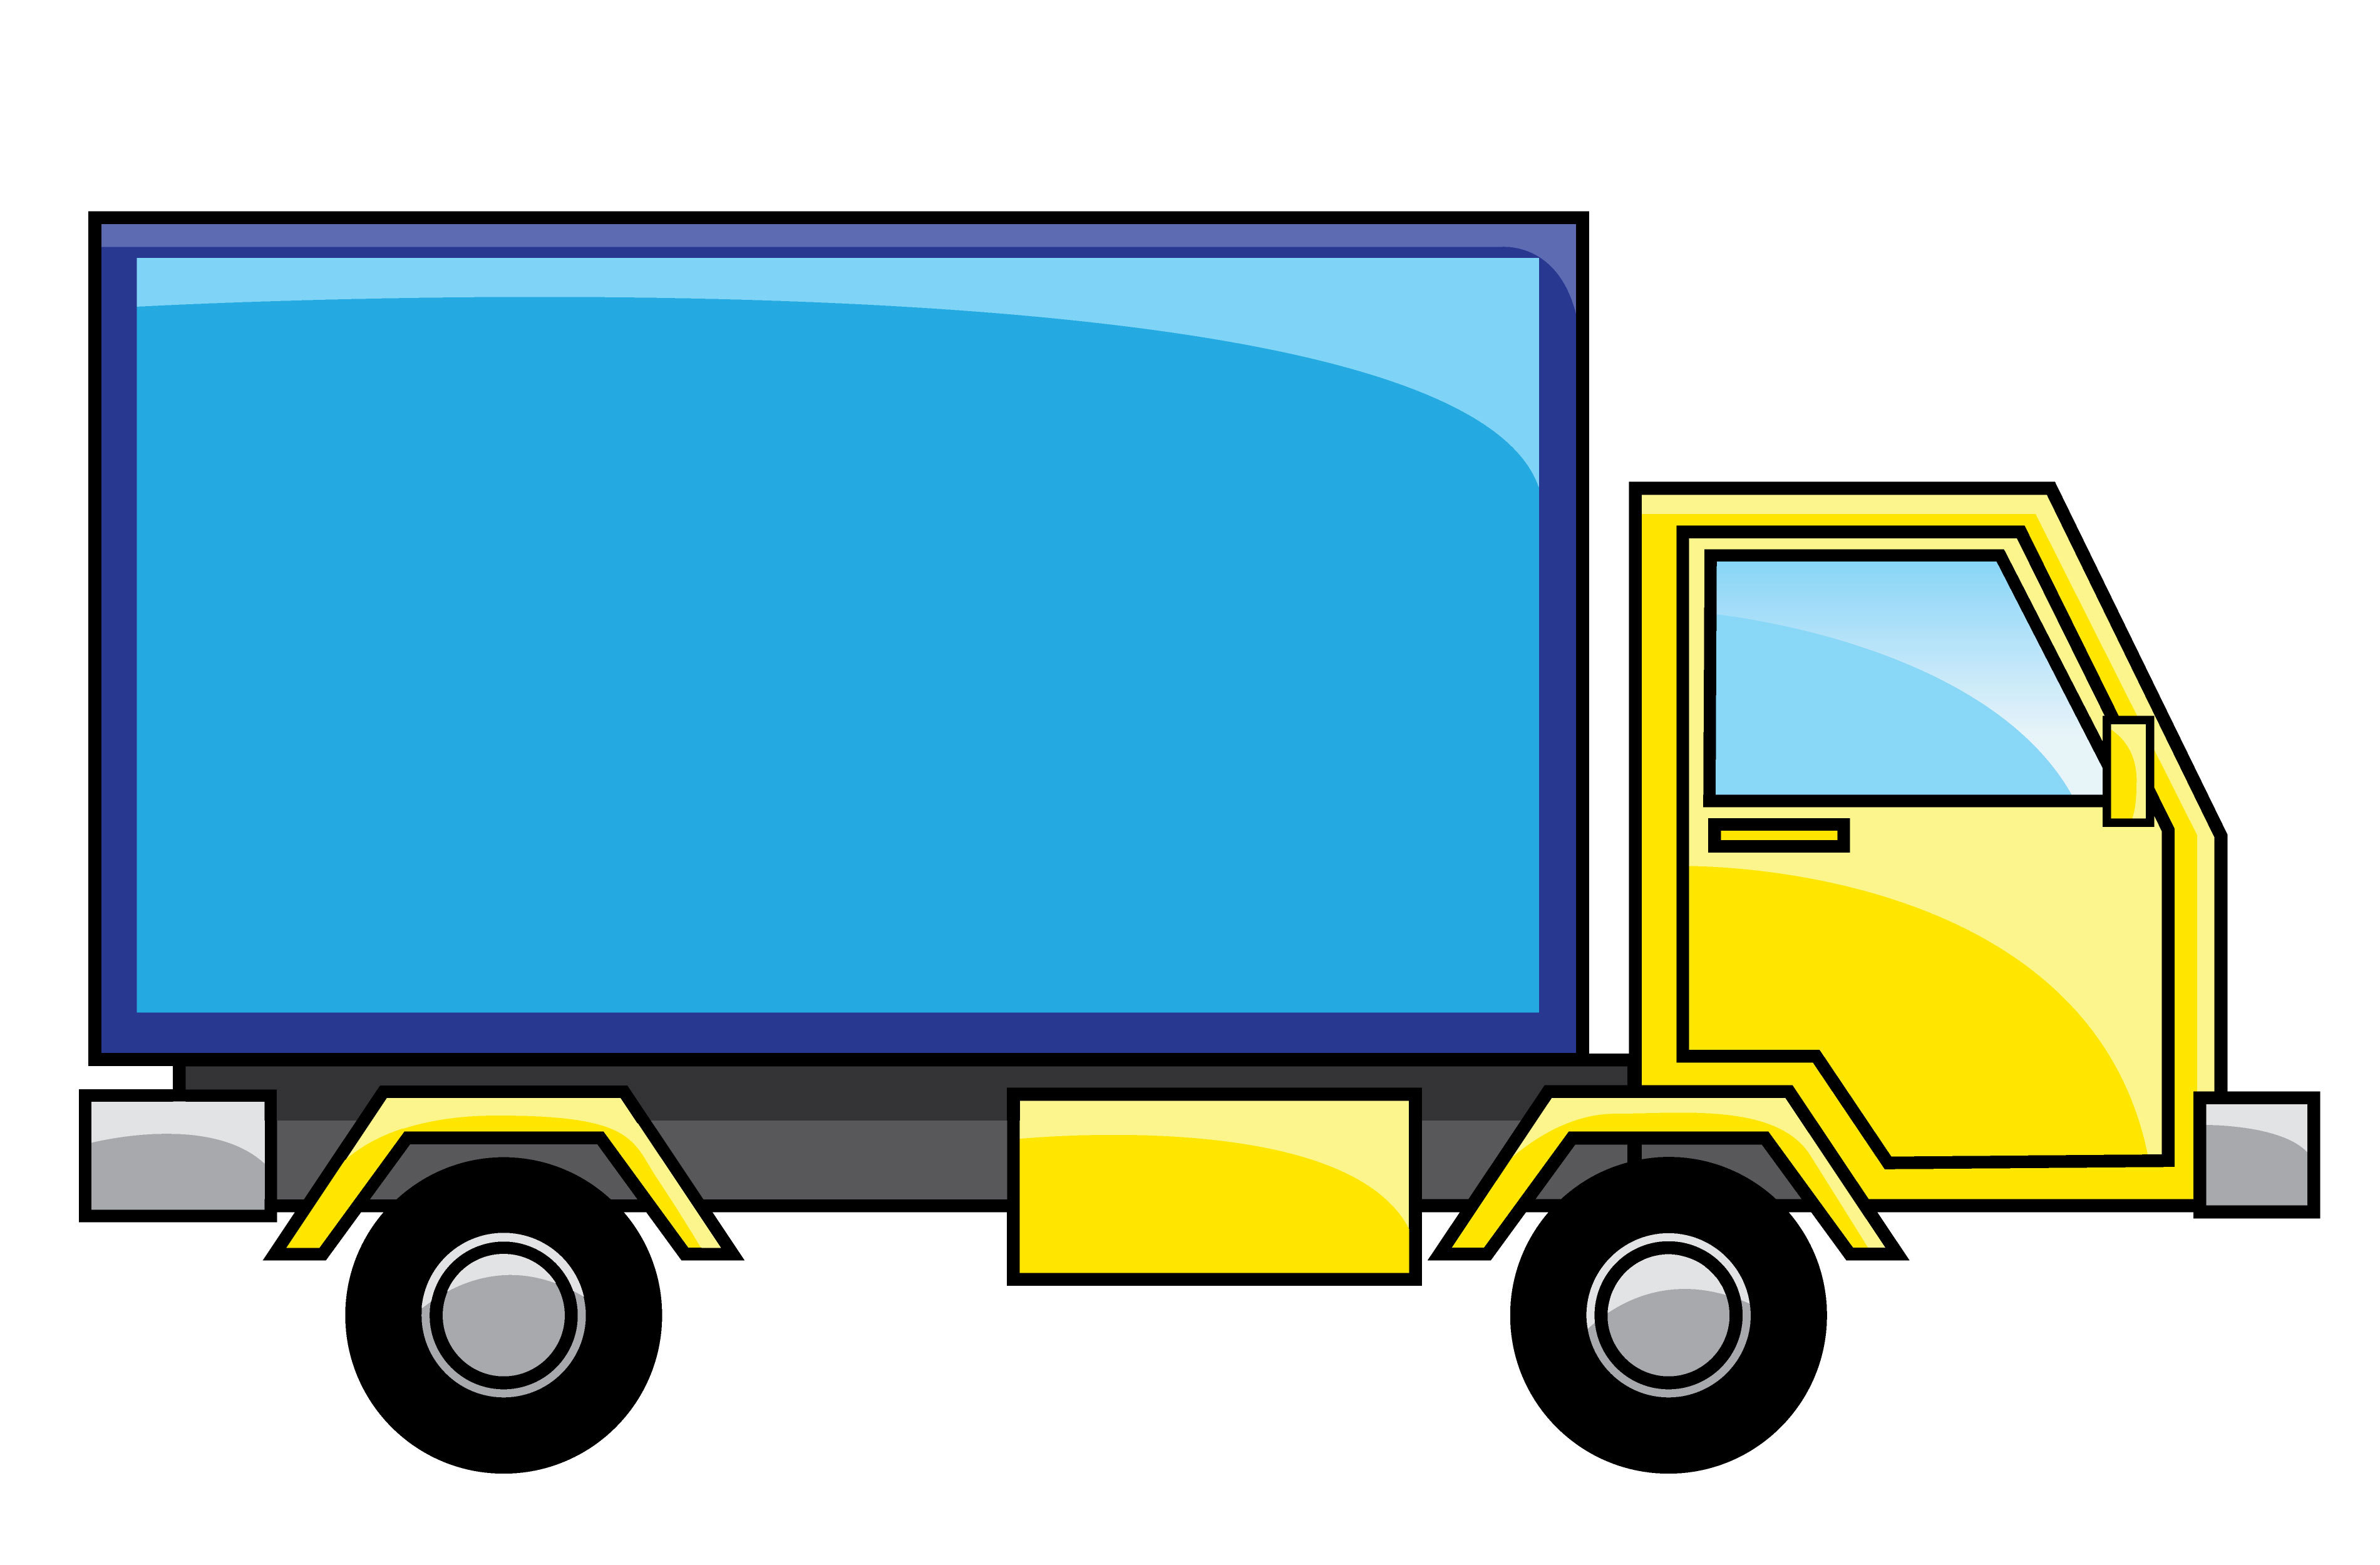 Free Truck Clipart Truck Graphics Clip art of Truck Clipart.